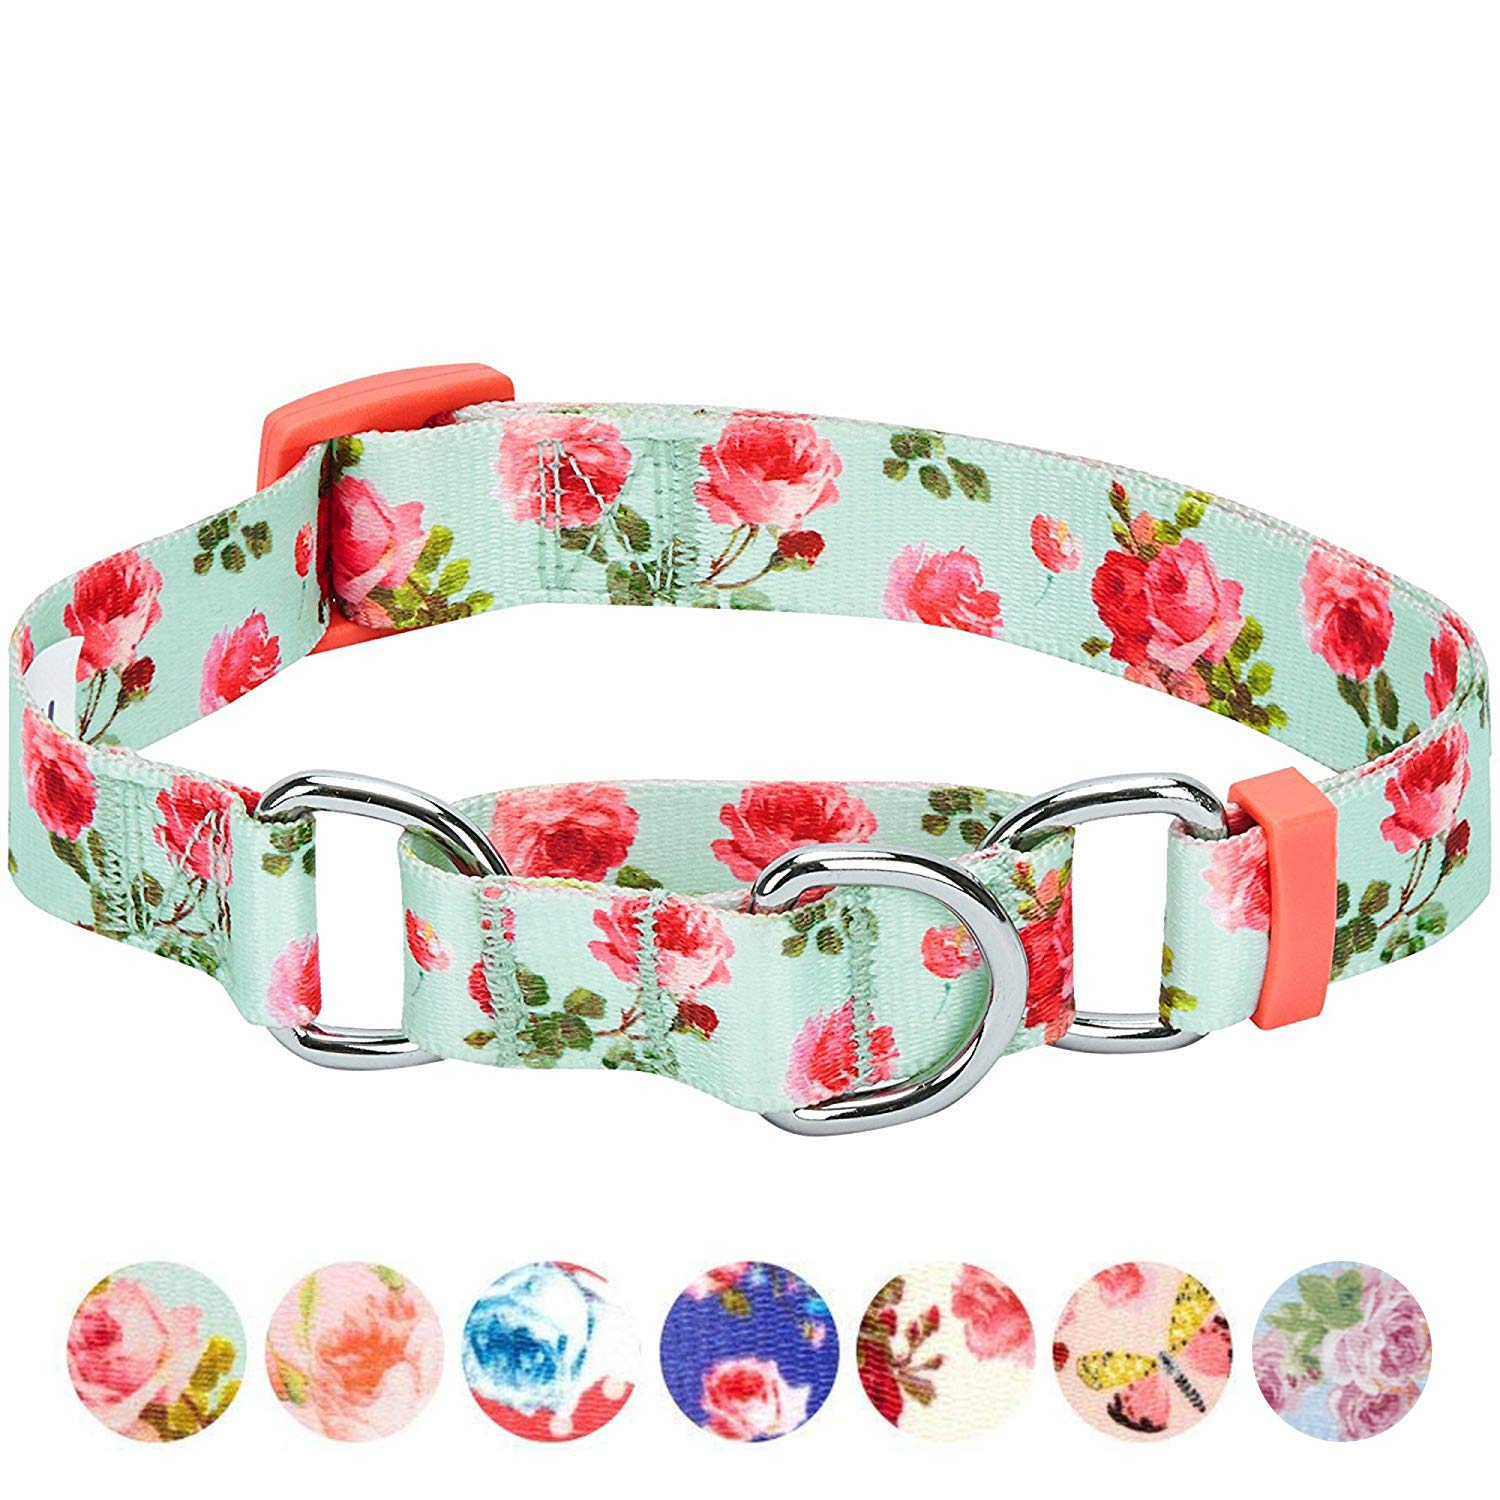 Blueberry Pet 6 Patterns Spring Scent Inspired Rose Print Safety Training Martingale Dog Collar, Turquoise, Medium, Heavy Duty Adjustable Collars for Dogs